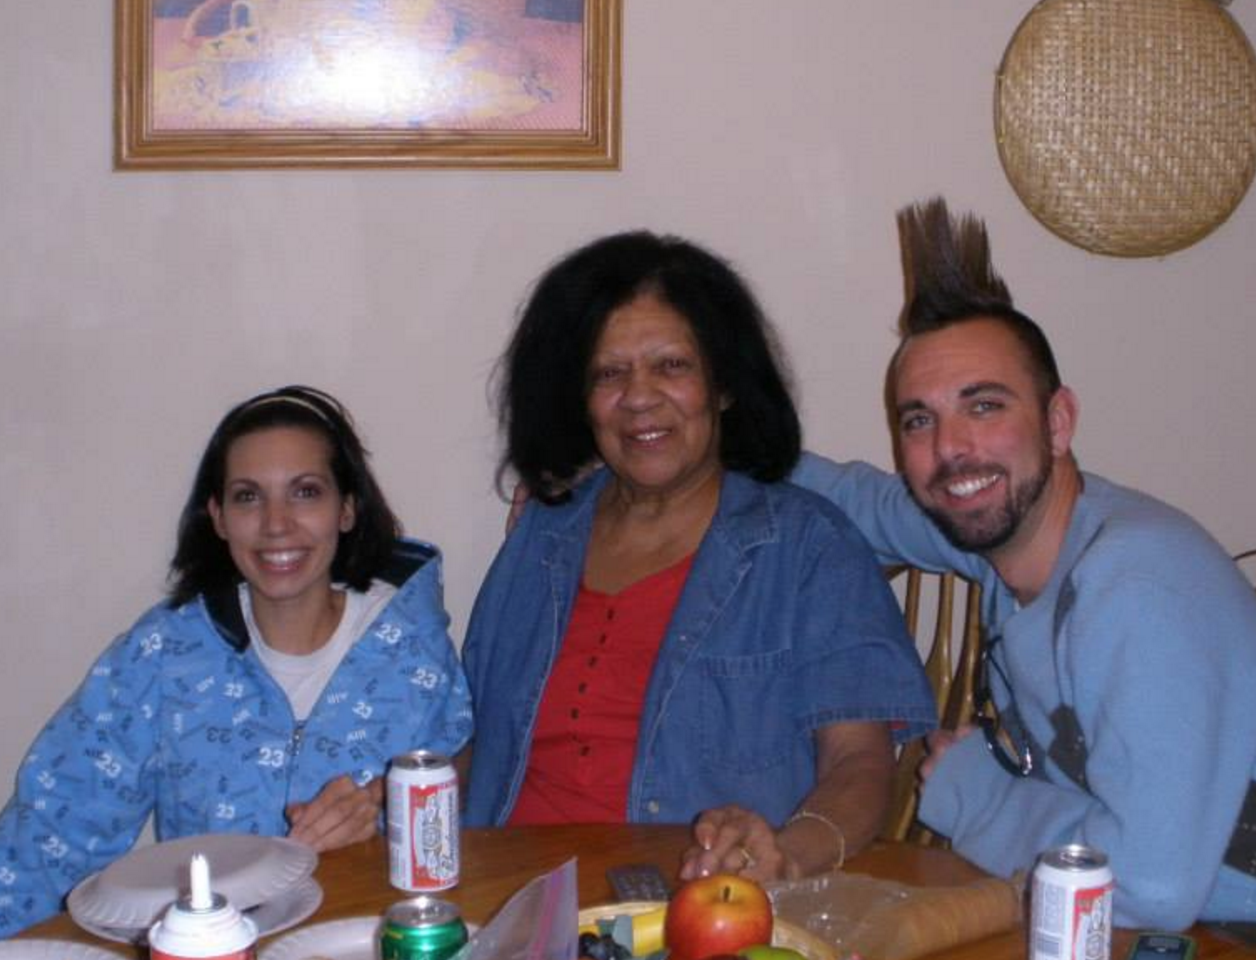 FEATURED MULTIRACIAL INDIVIDUAL: MEET PHILIP via Swirl Nation Blog